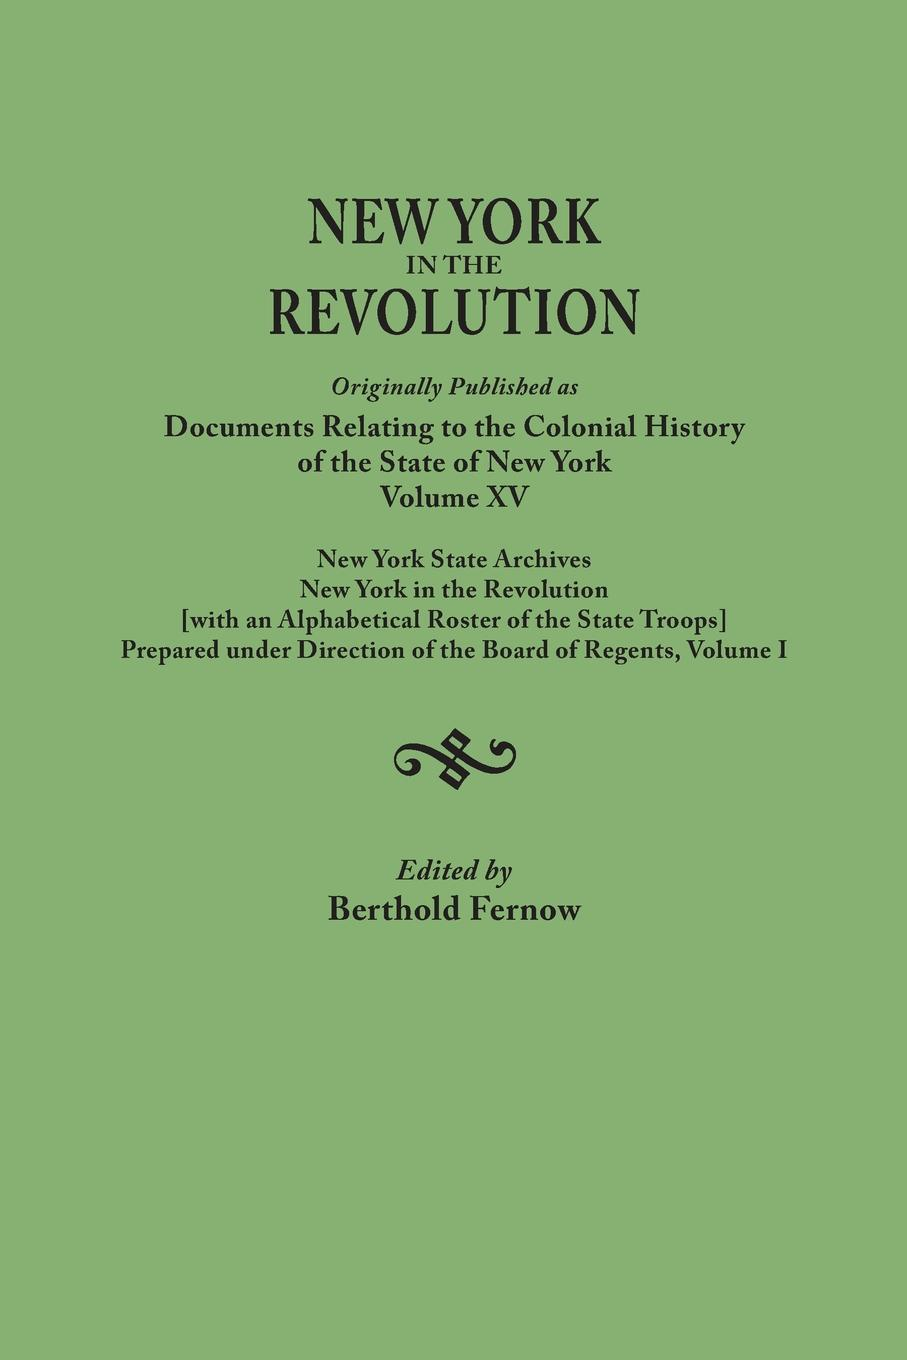 New York in the Revolution. Originally published as Documents Relating to Colonial History of State York, Volume XV. Archives. Revolution .with an Alphabetical Roster Troops., Prepared und...